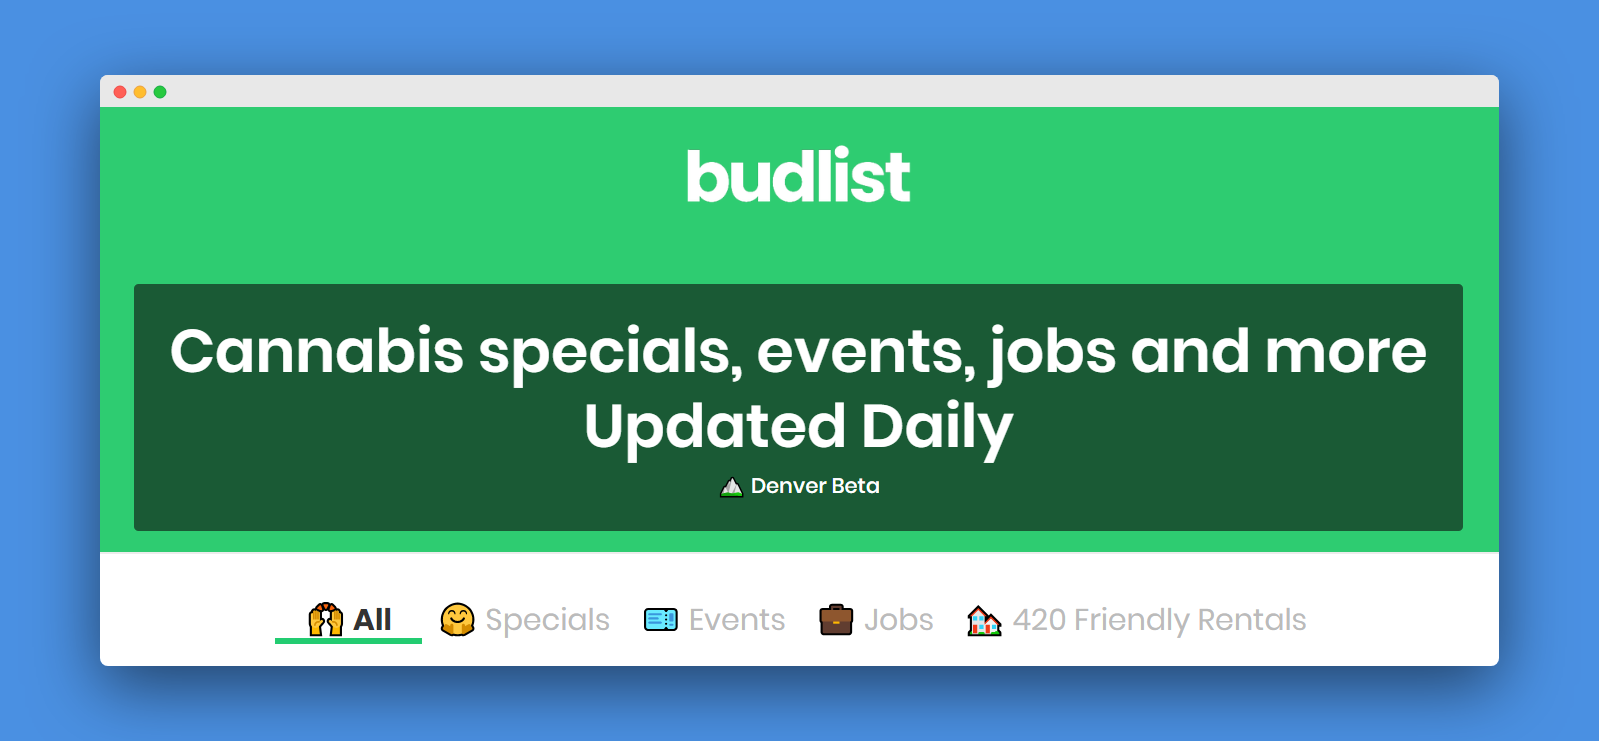 Budlist - Cannabis specials, jobs, events and more - updated daily